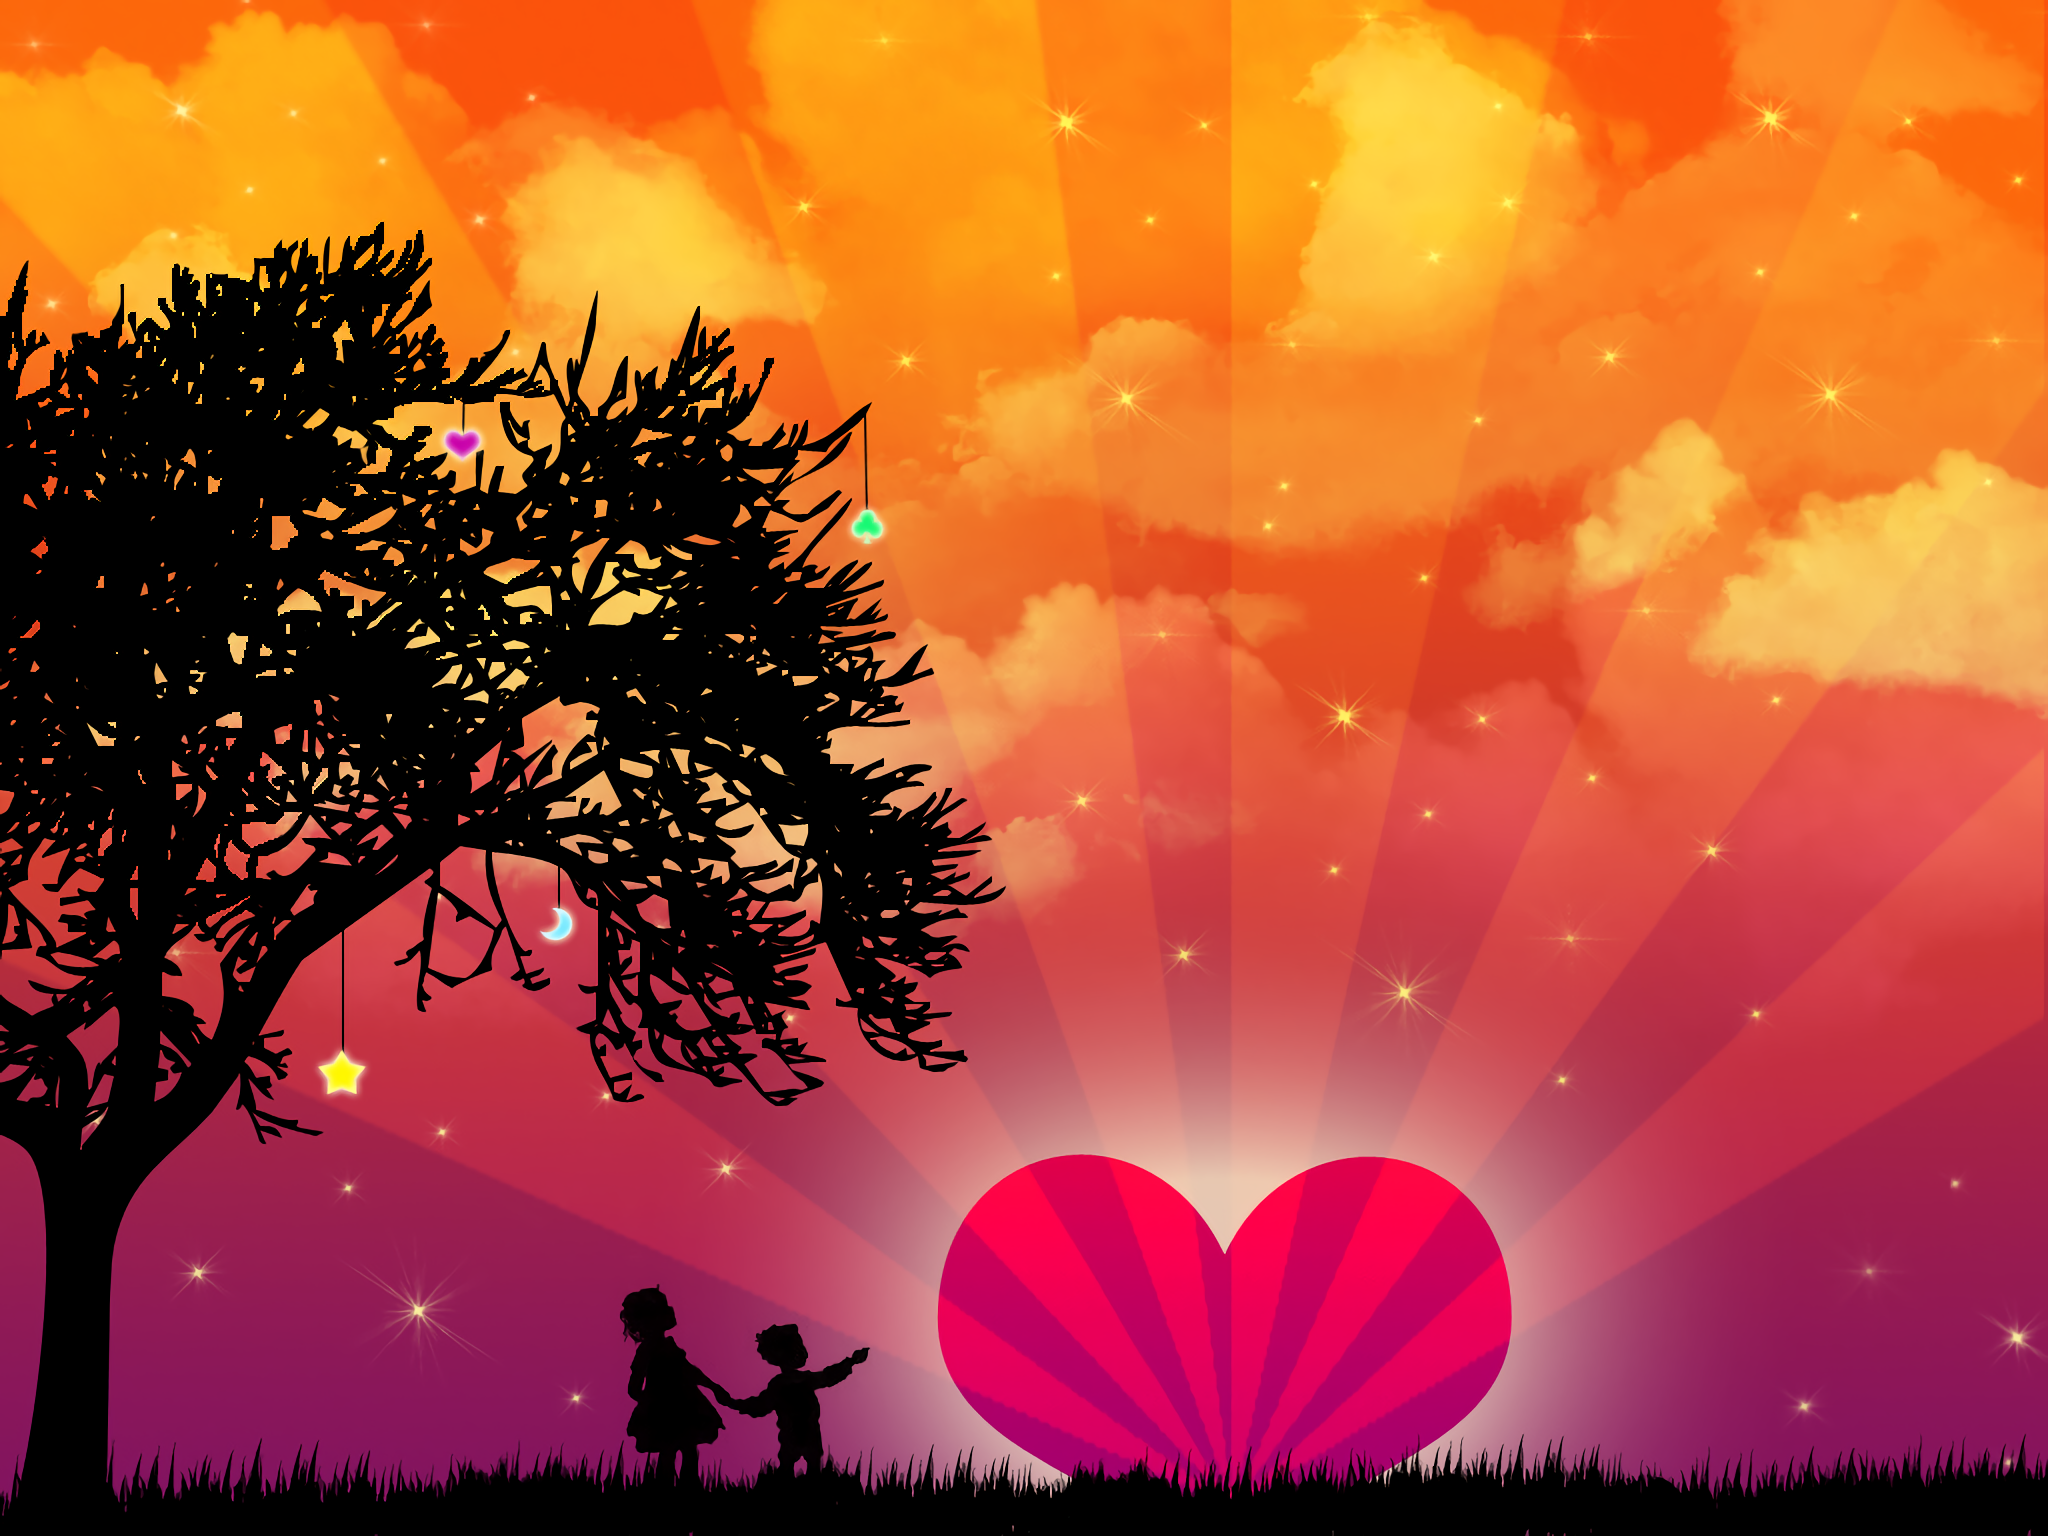 Cute Love Wallpaper Full Hd Download Des 974004 Png Images Pngio